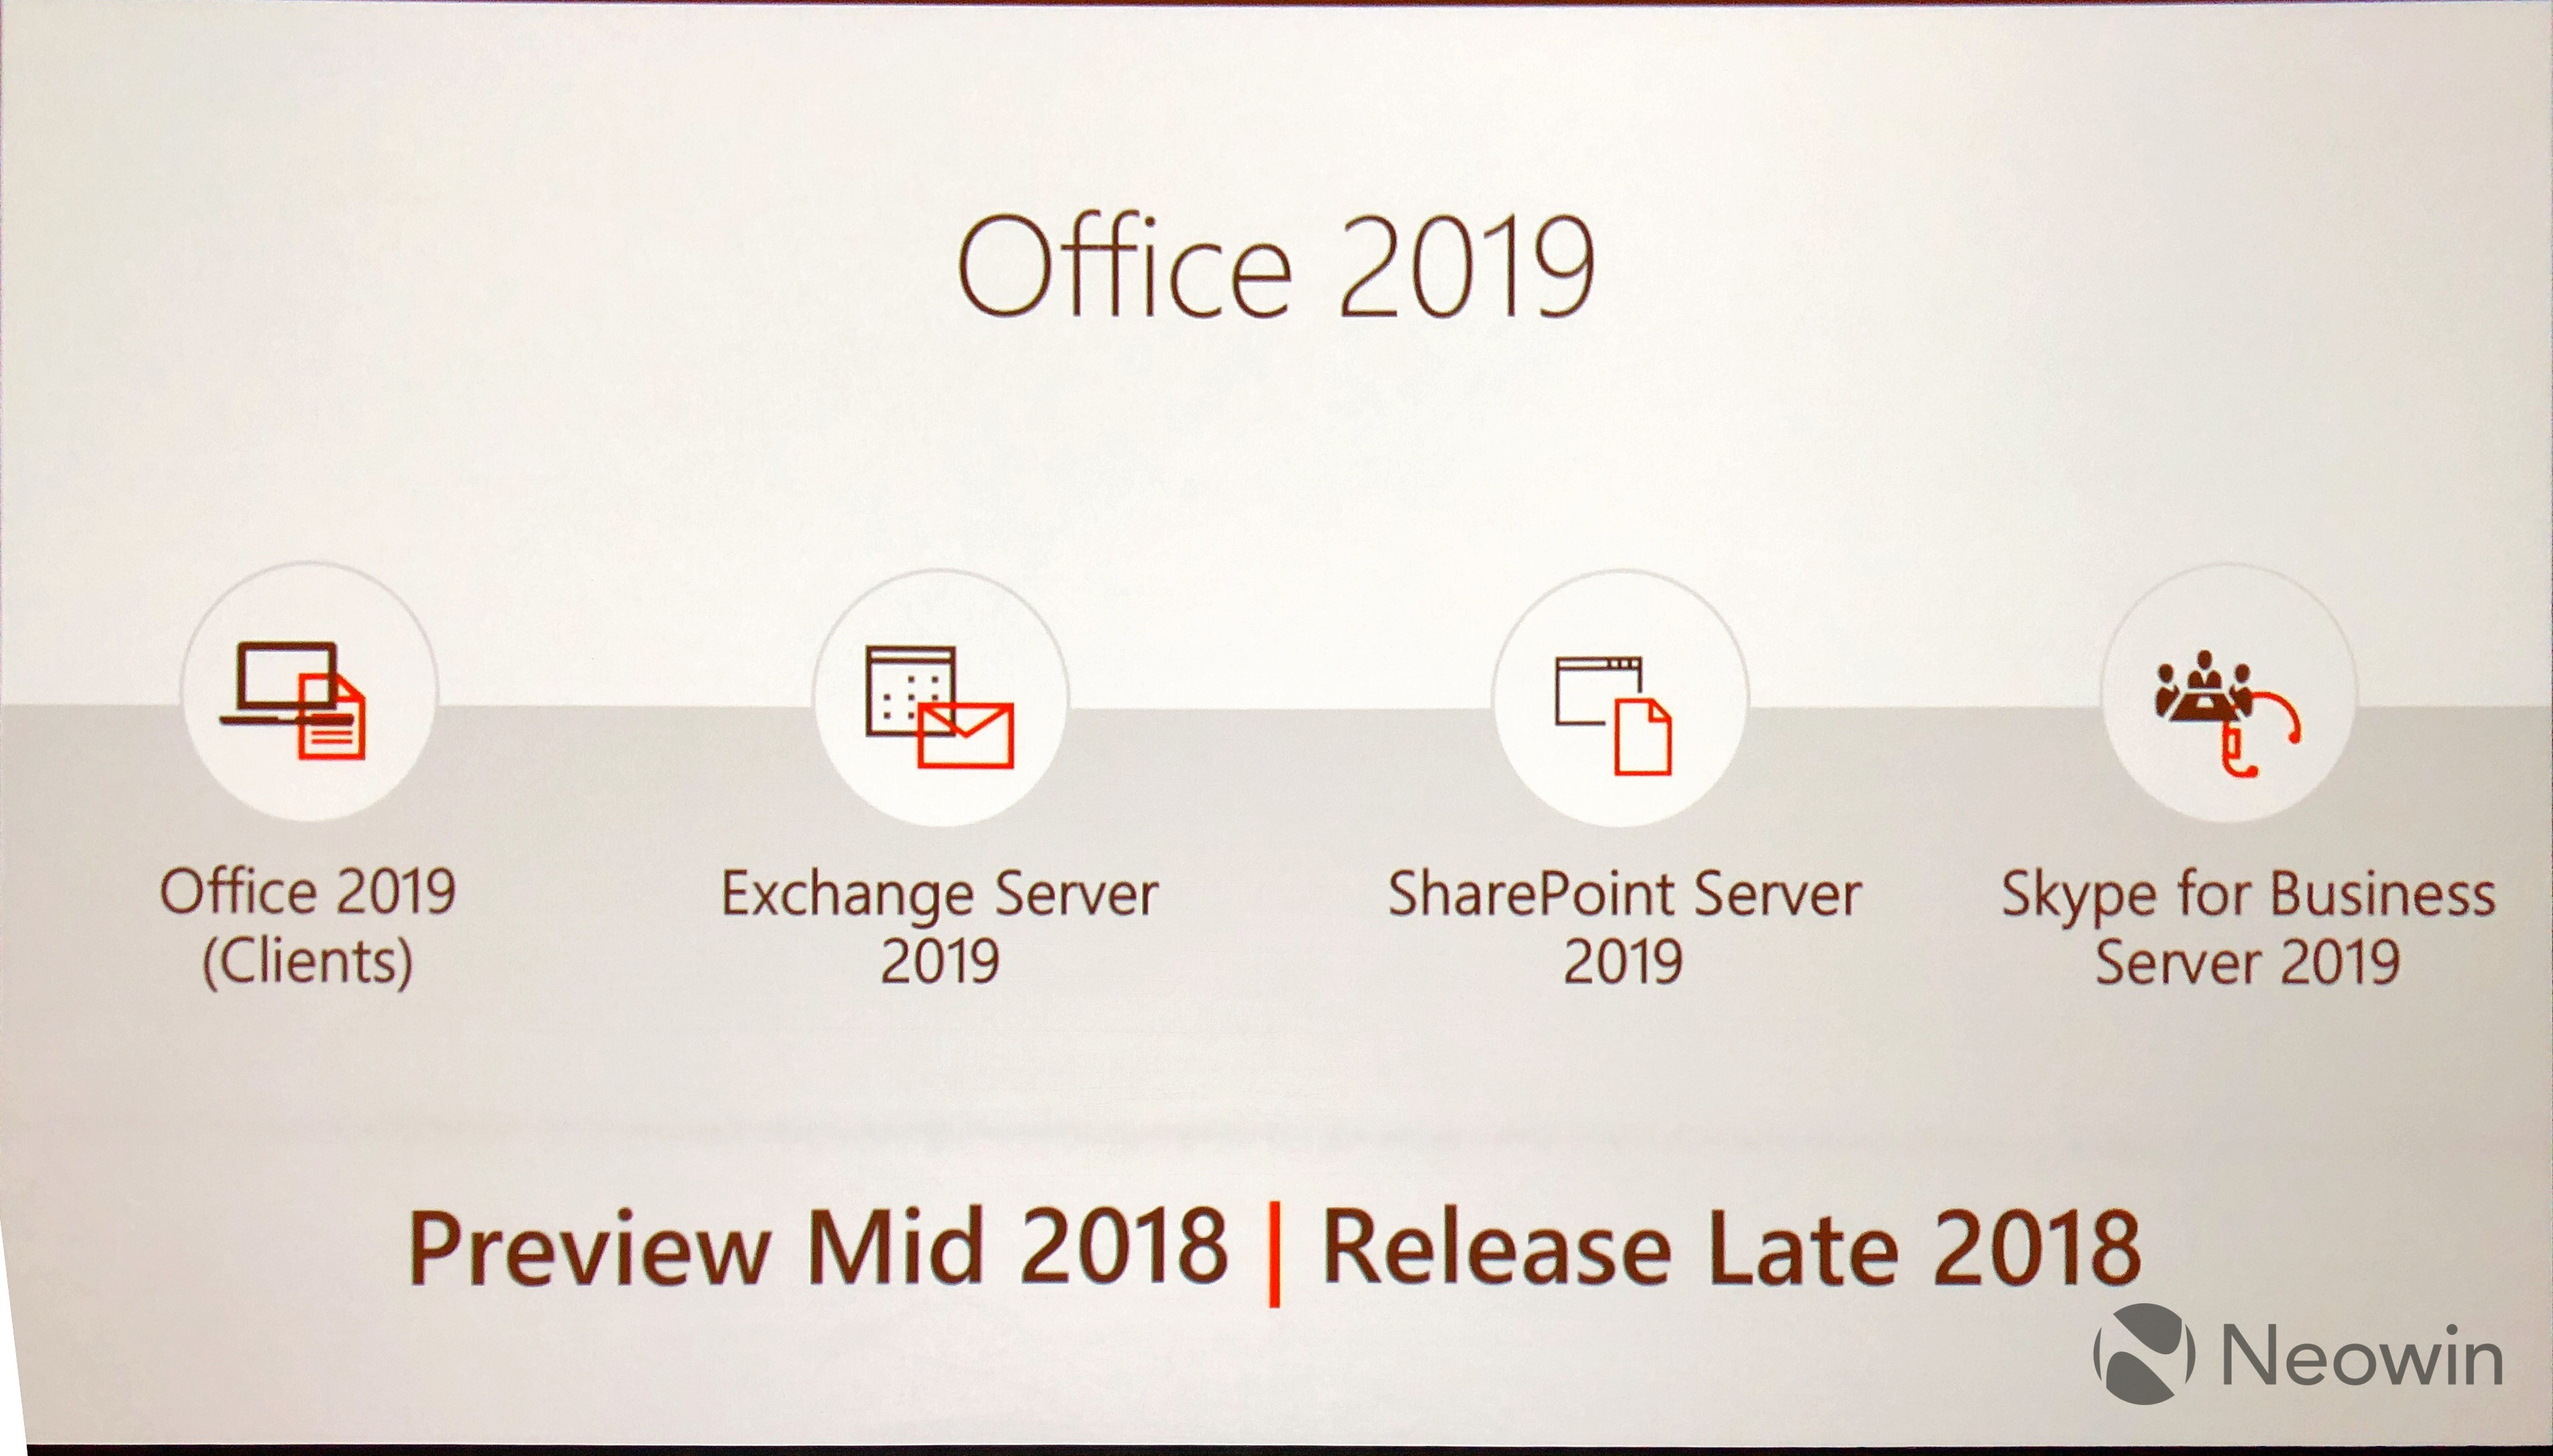 Microsoft announces Office 2019 at its Ignite conference